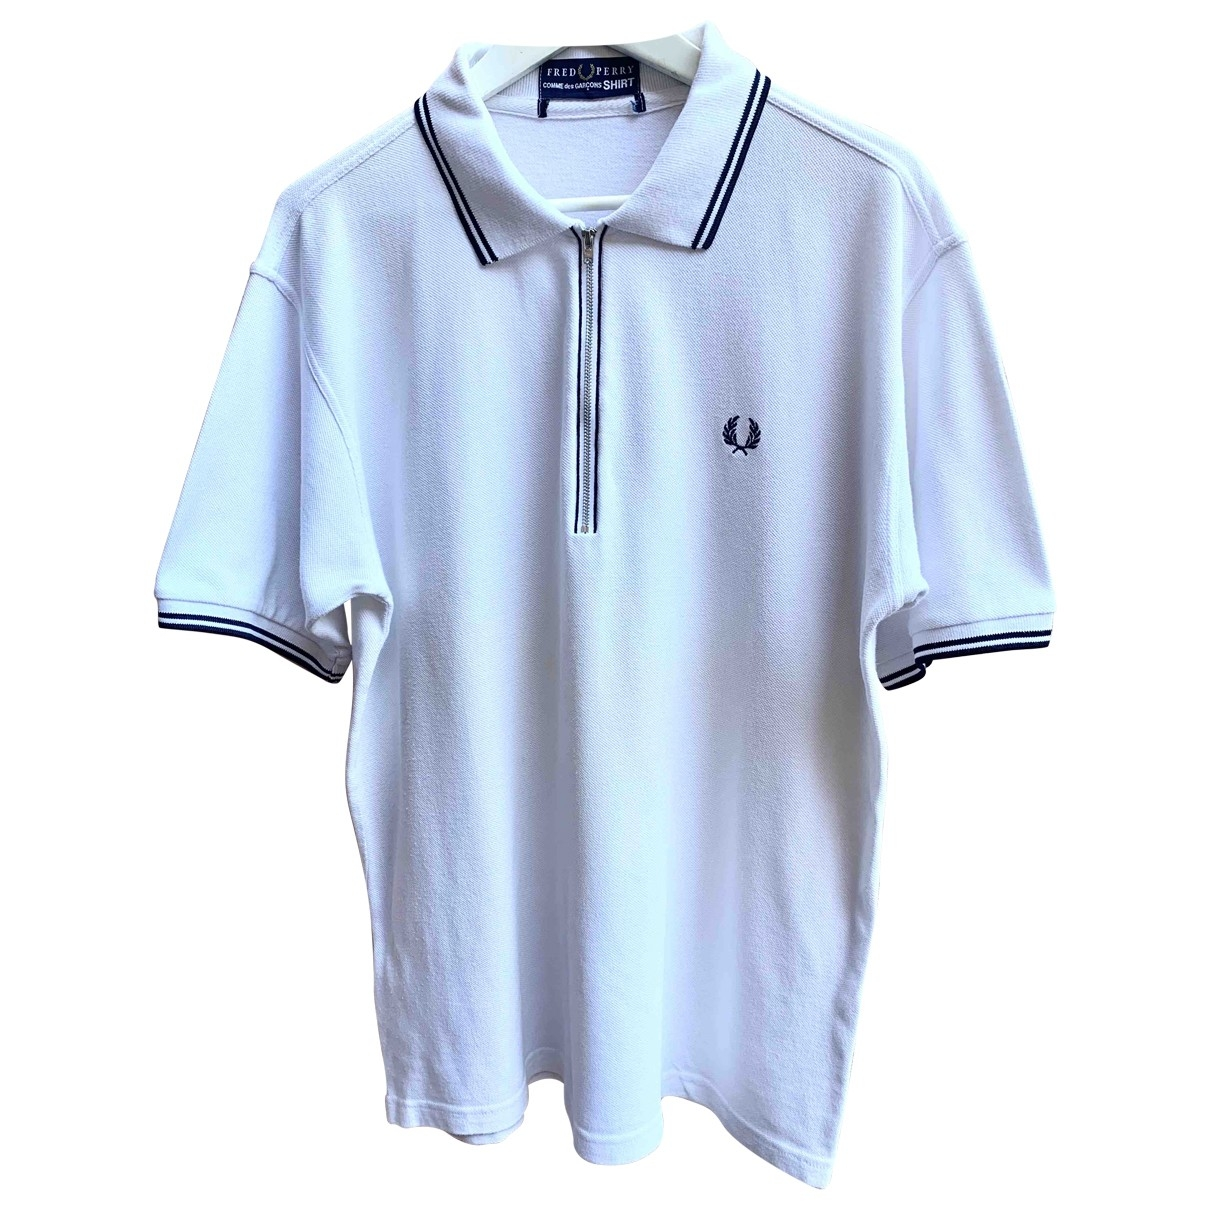 Fred Perry \N White Cotton Polo shirts for Men XL International